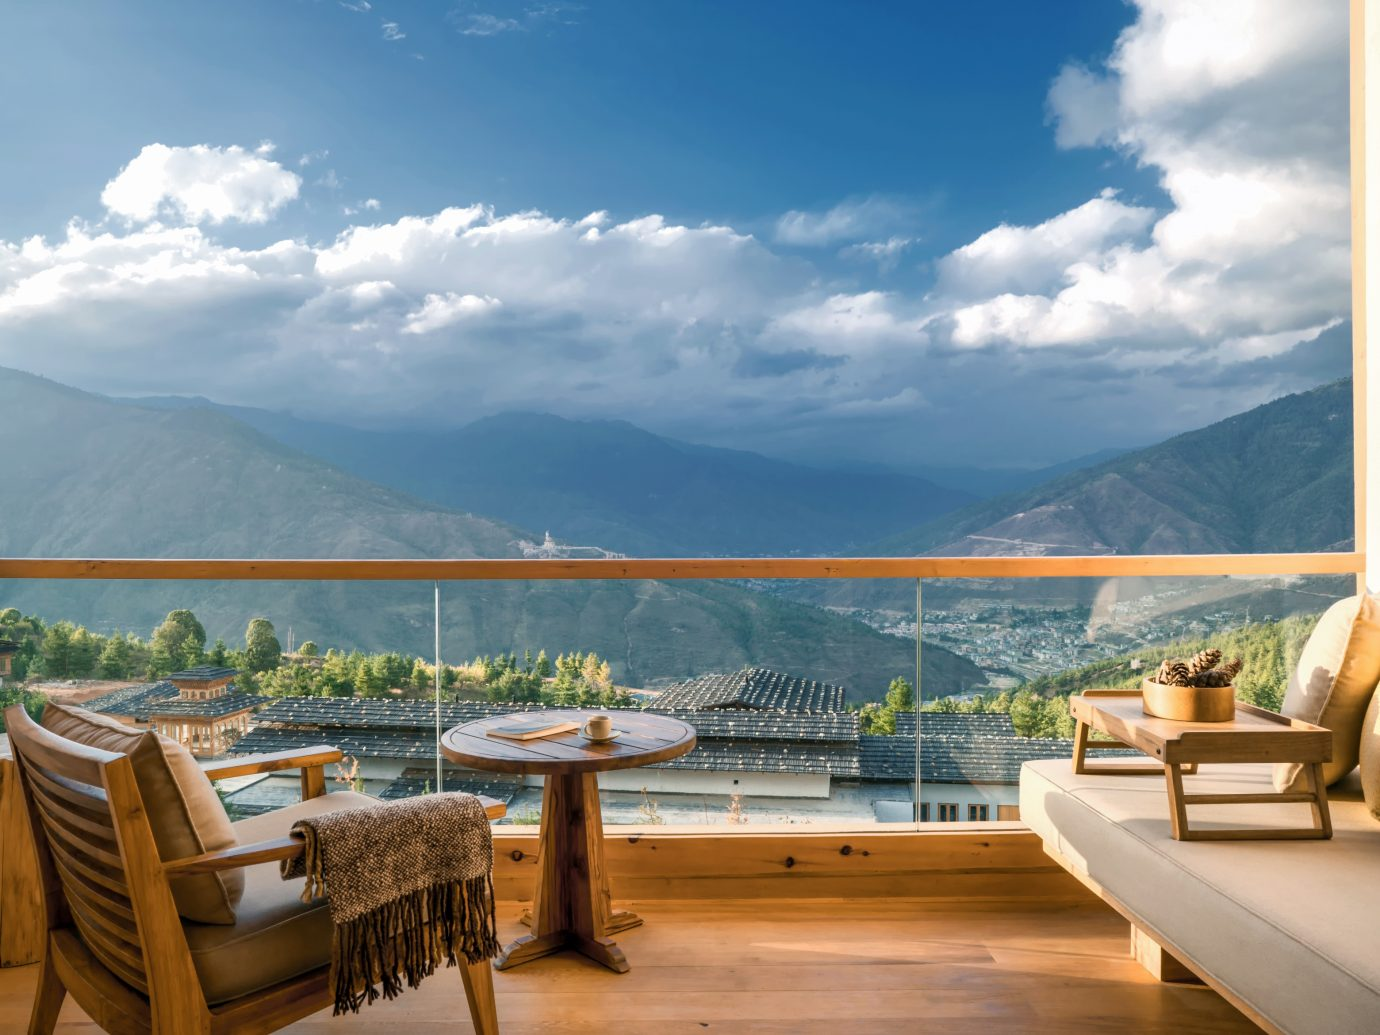 Balcony of the Lodge Suite at Six Senses Bhutan